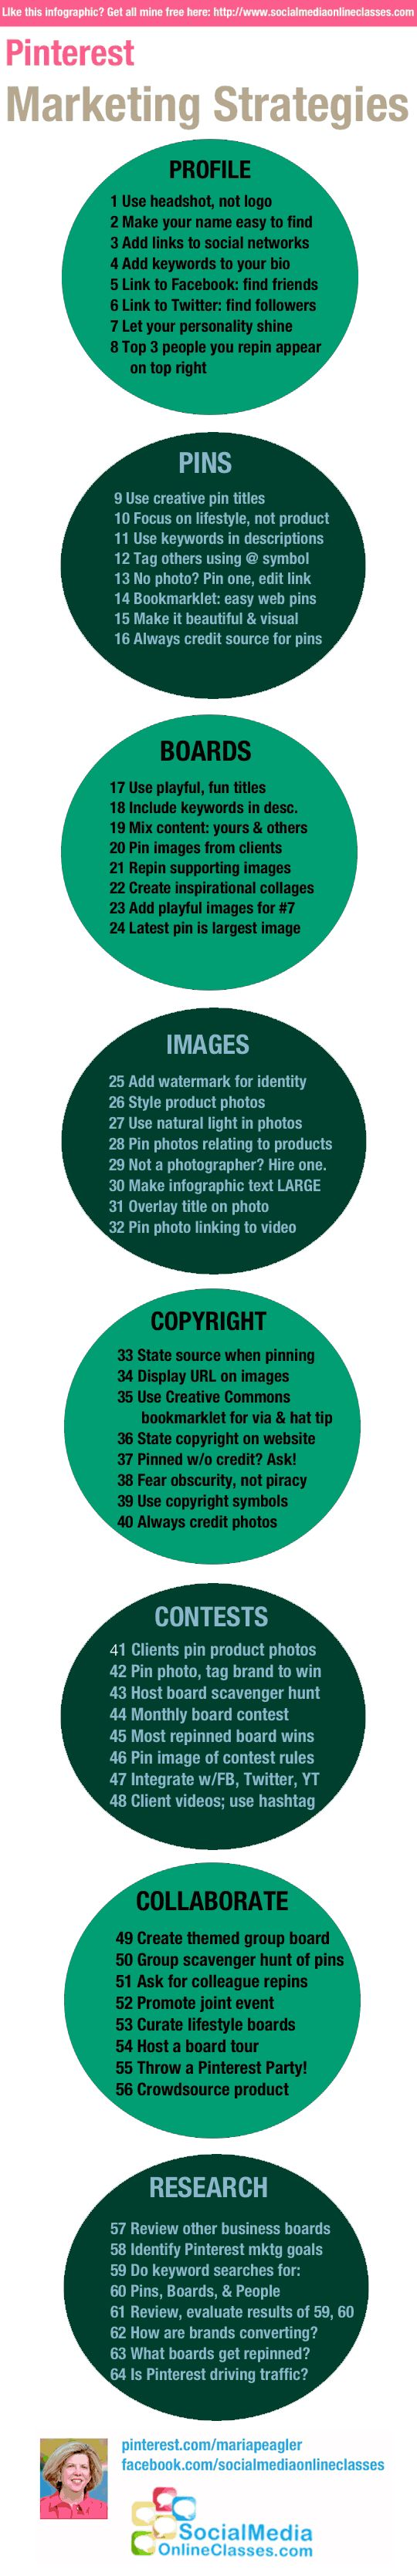 #Businesses: #Marketing Tips for #Pinterest. #Infographic #SMB